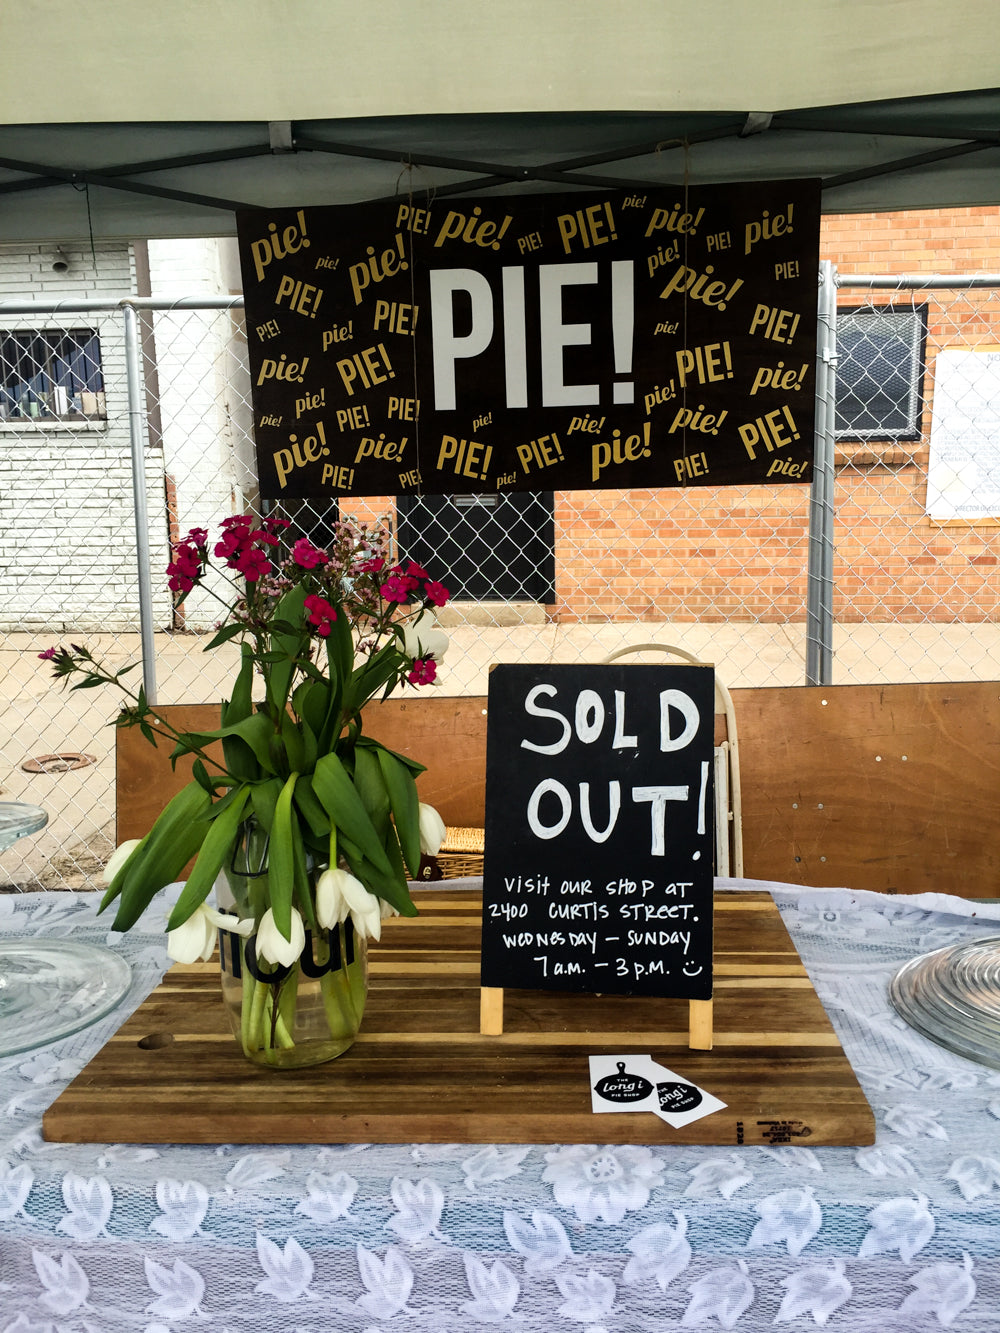 Pie Shop is Sold Out | Denver Flea